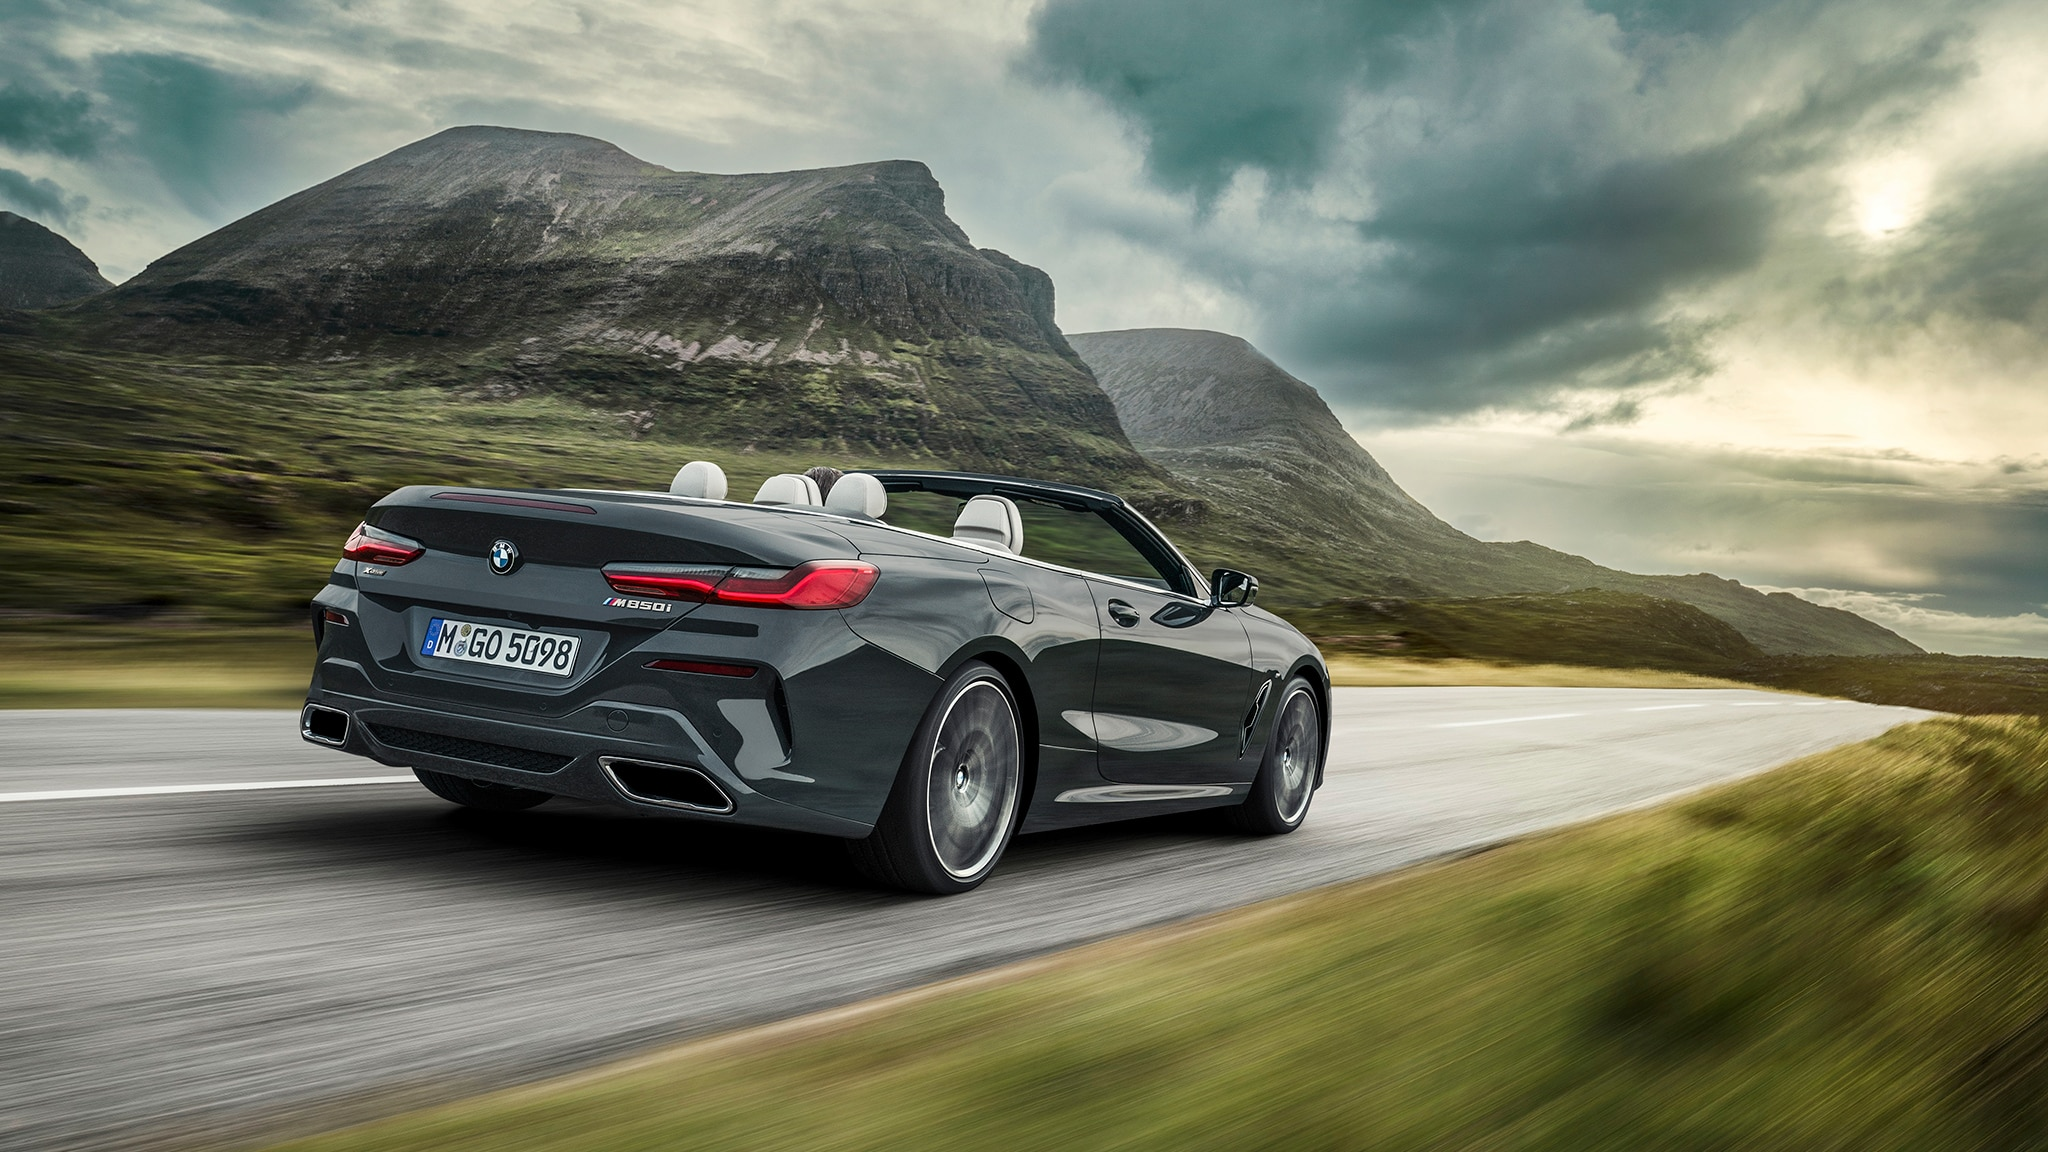 2019 BMW M850i Convertible Rear Motion